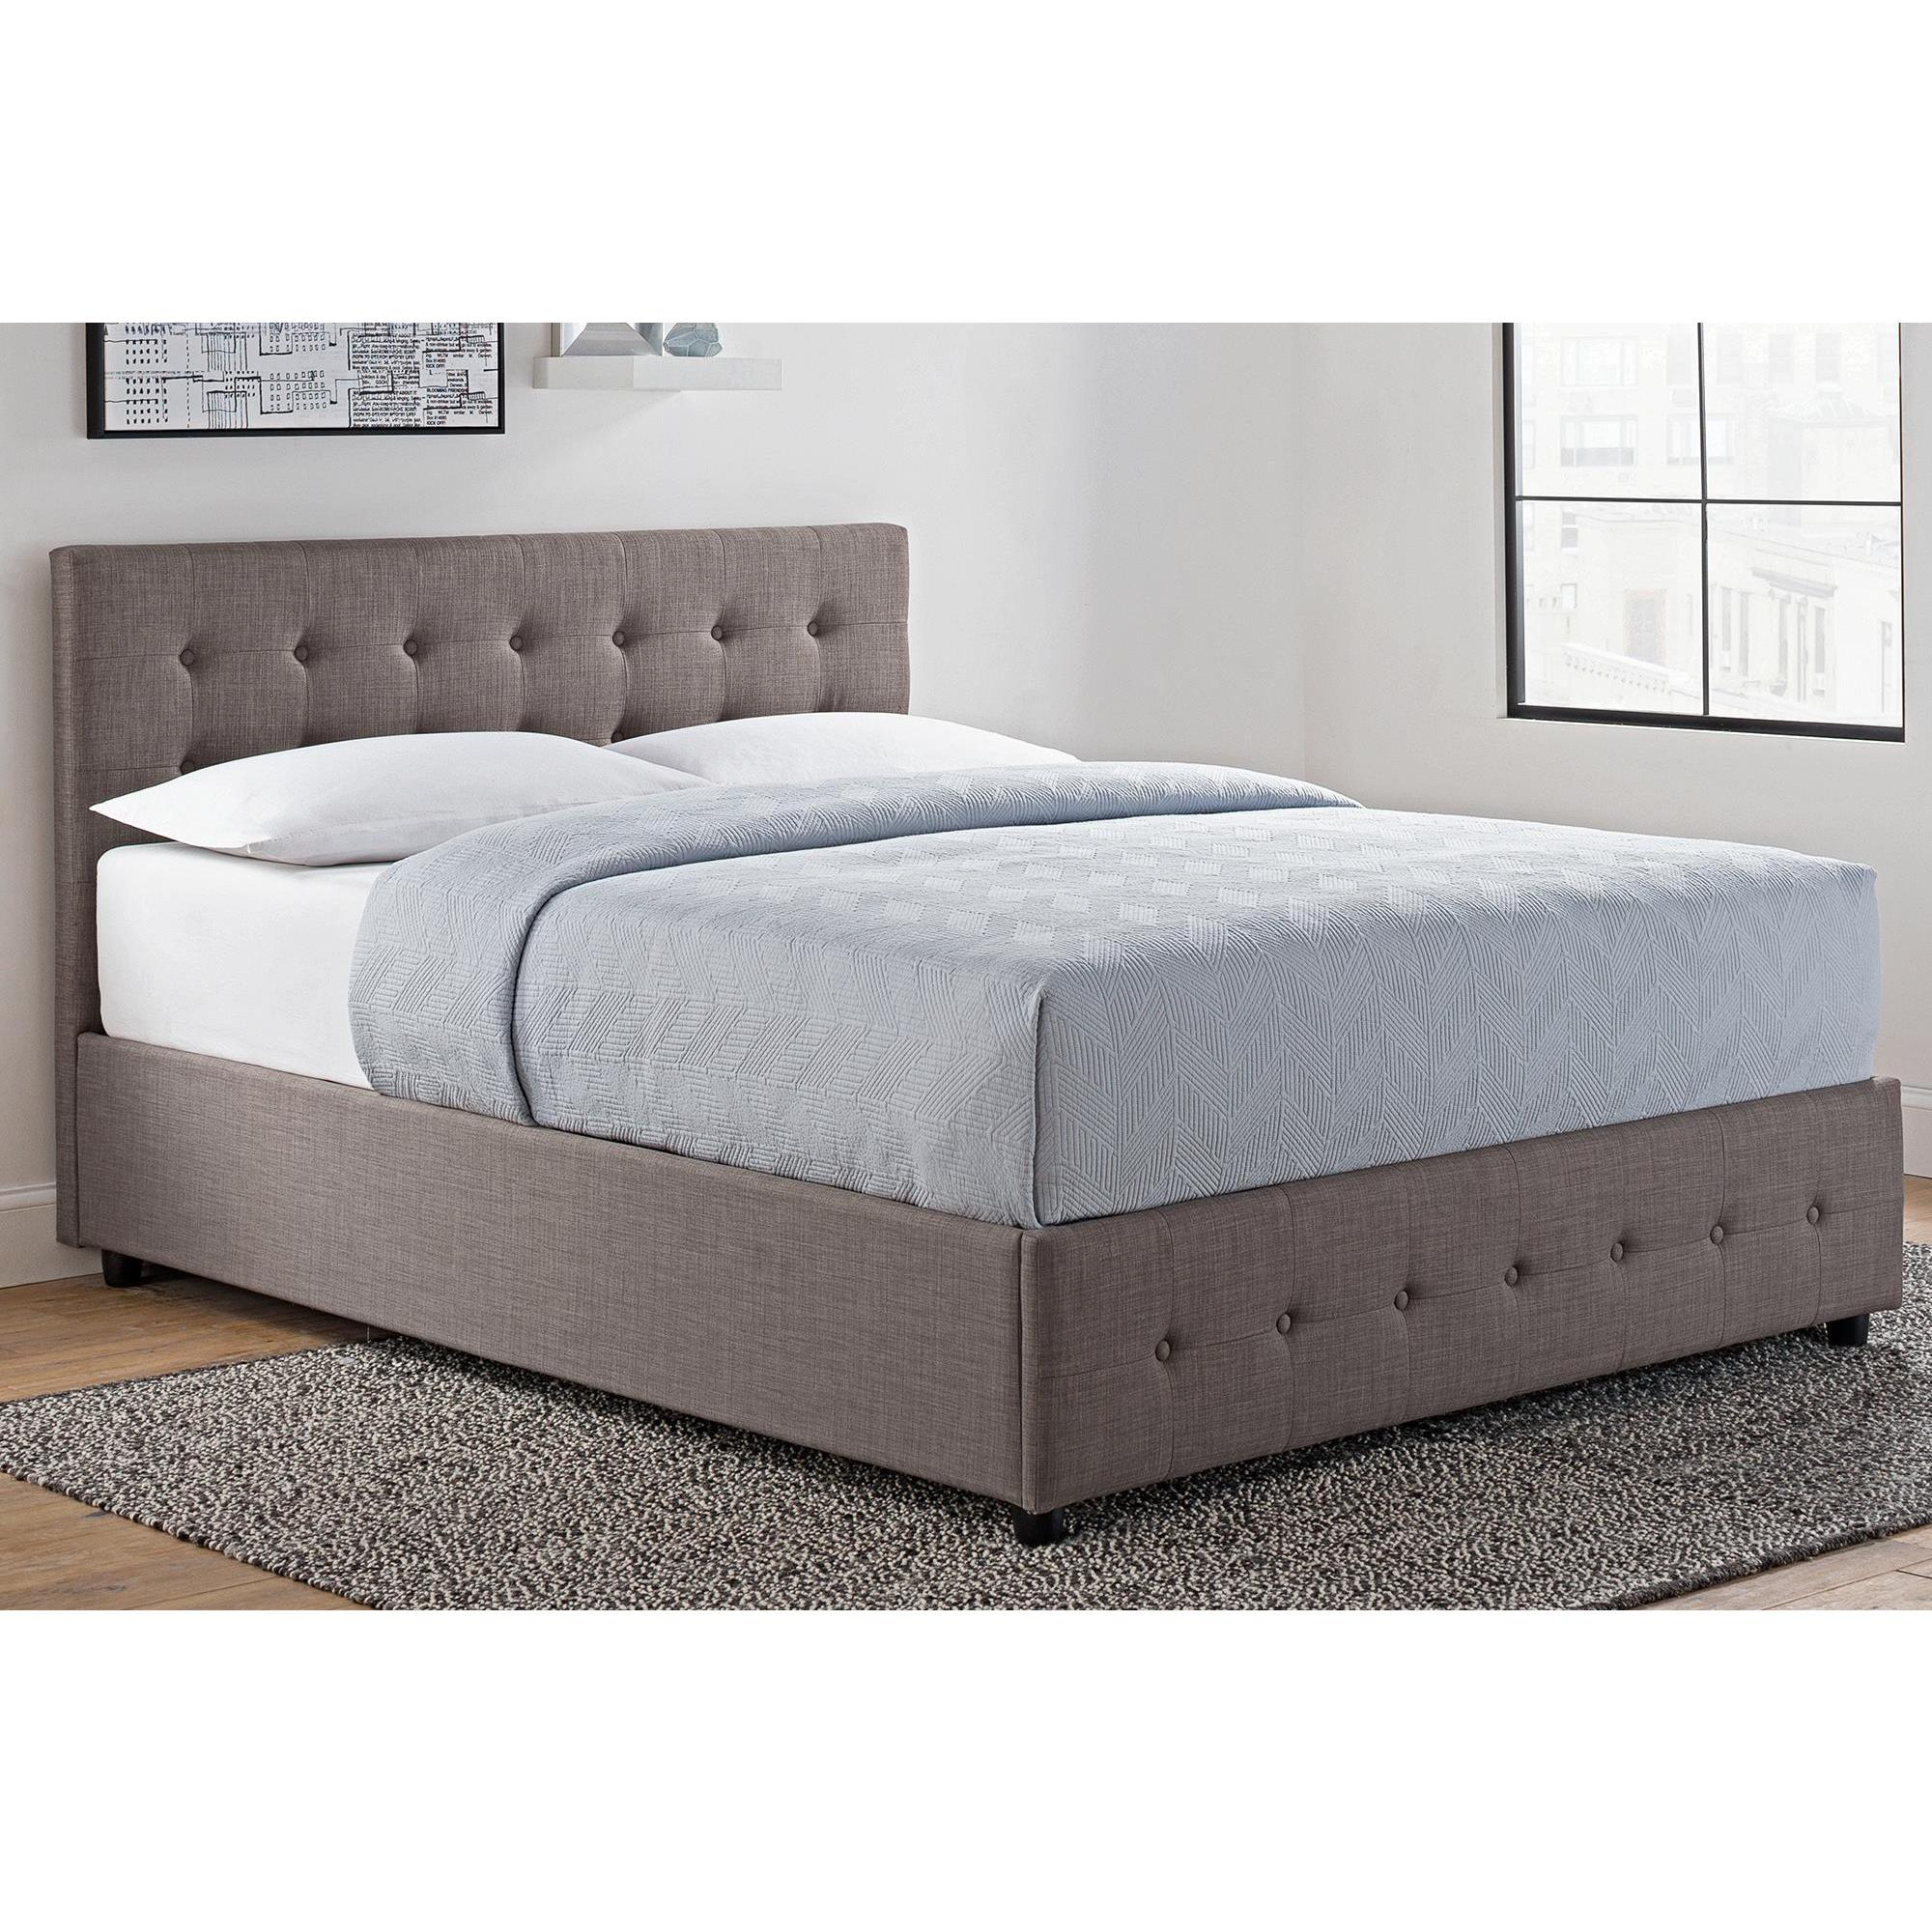 4e09cc842a91 Shop DHP Cambridge Grey Linen Upholstered Bed with Storage - Free Shipping  Today - Overstock - 12150963